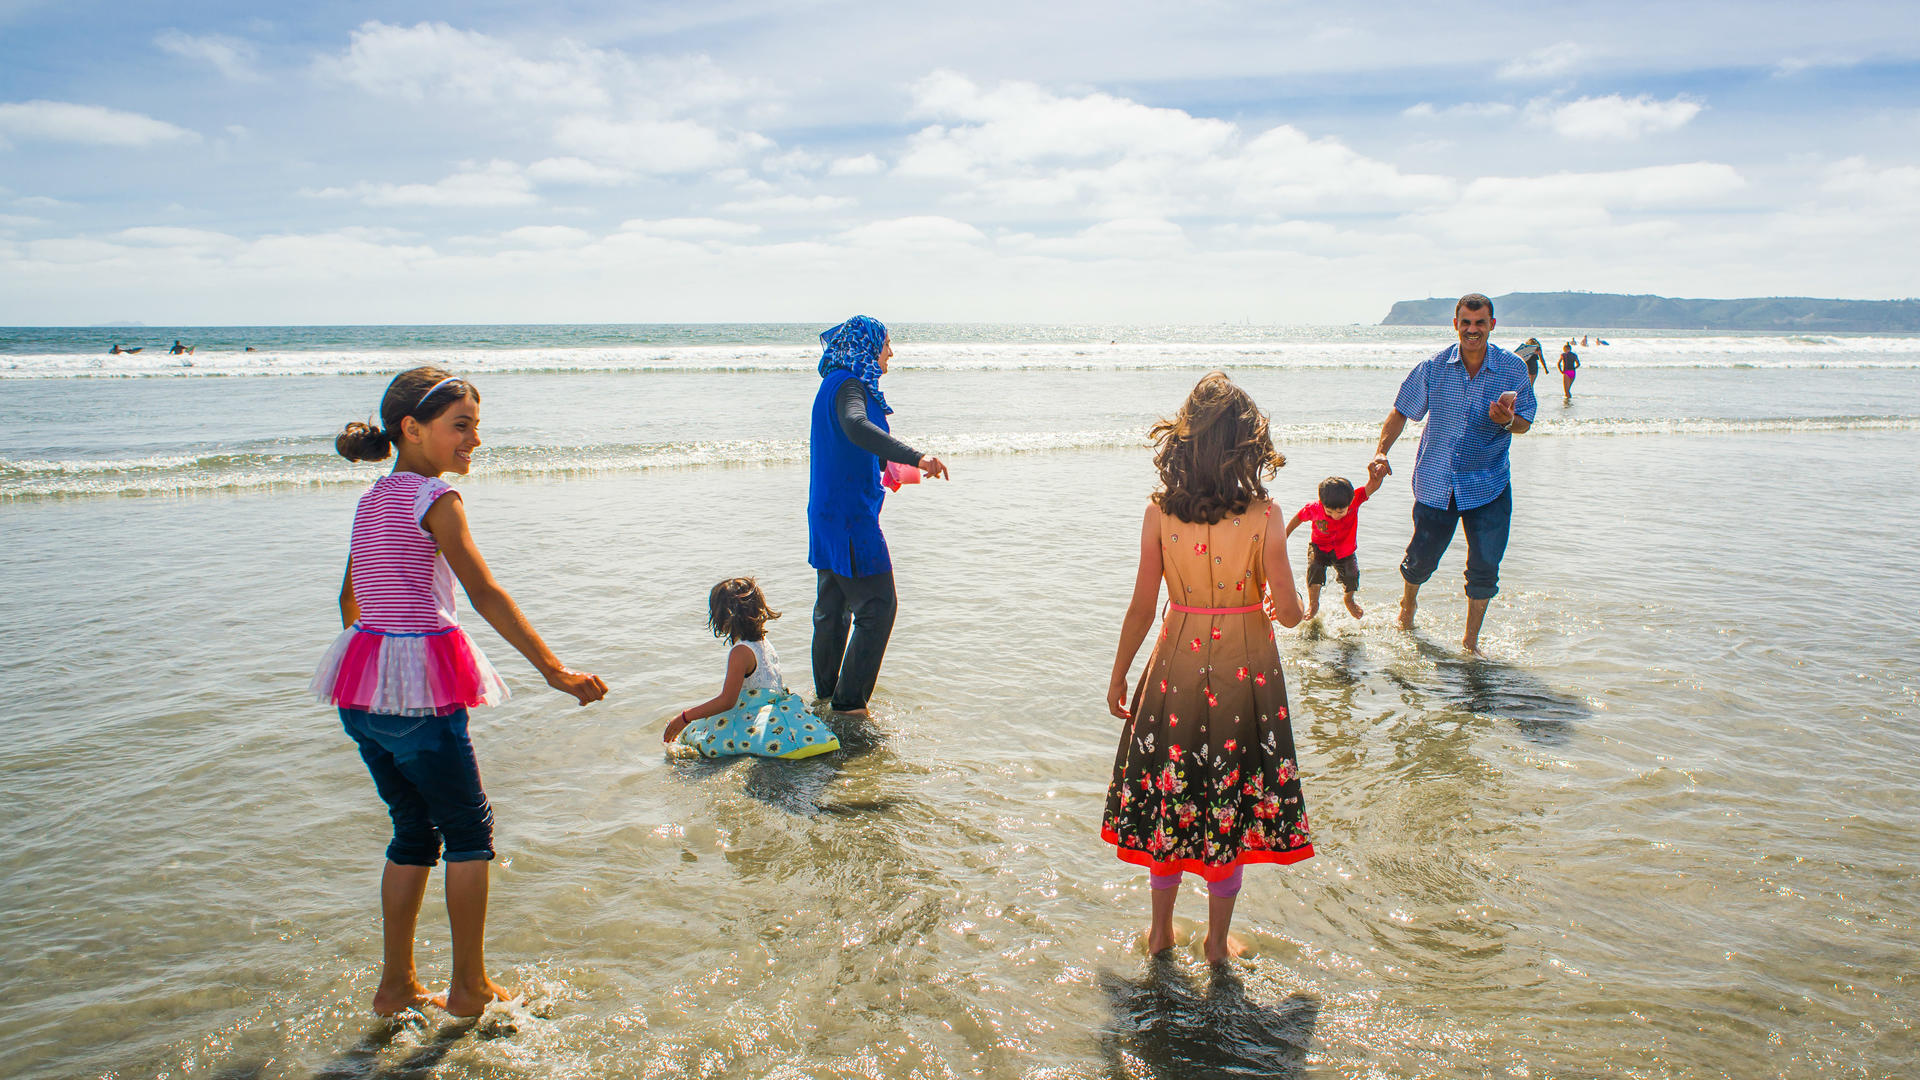 The Tlas family from Syria play in the surf at a California beach